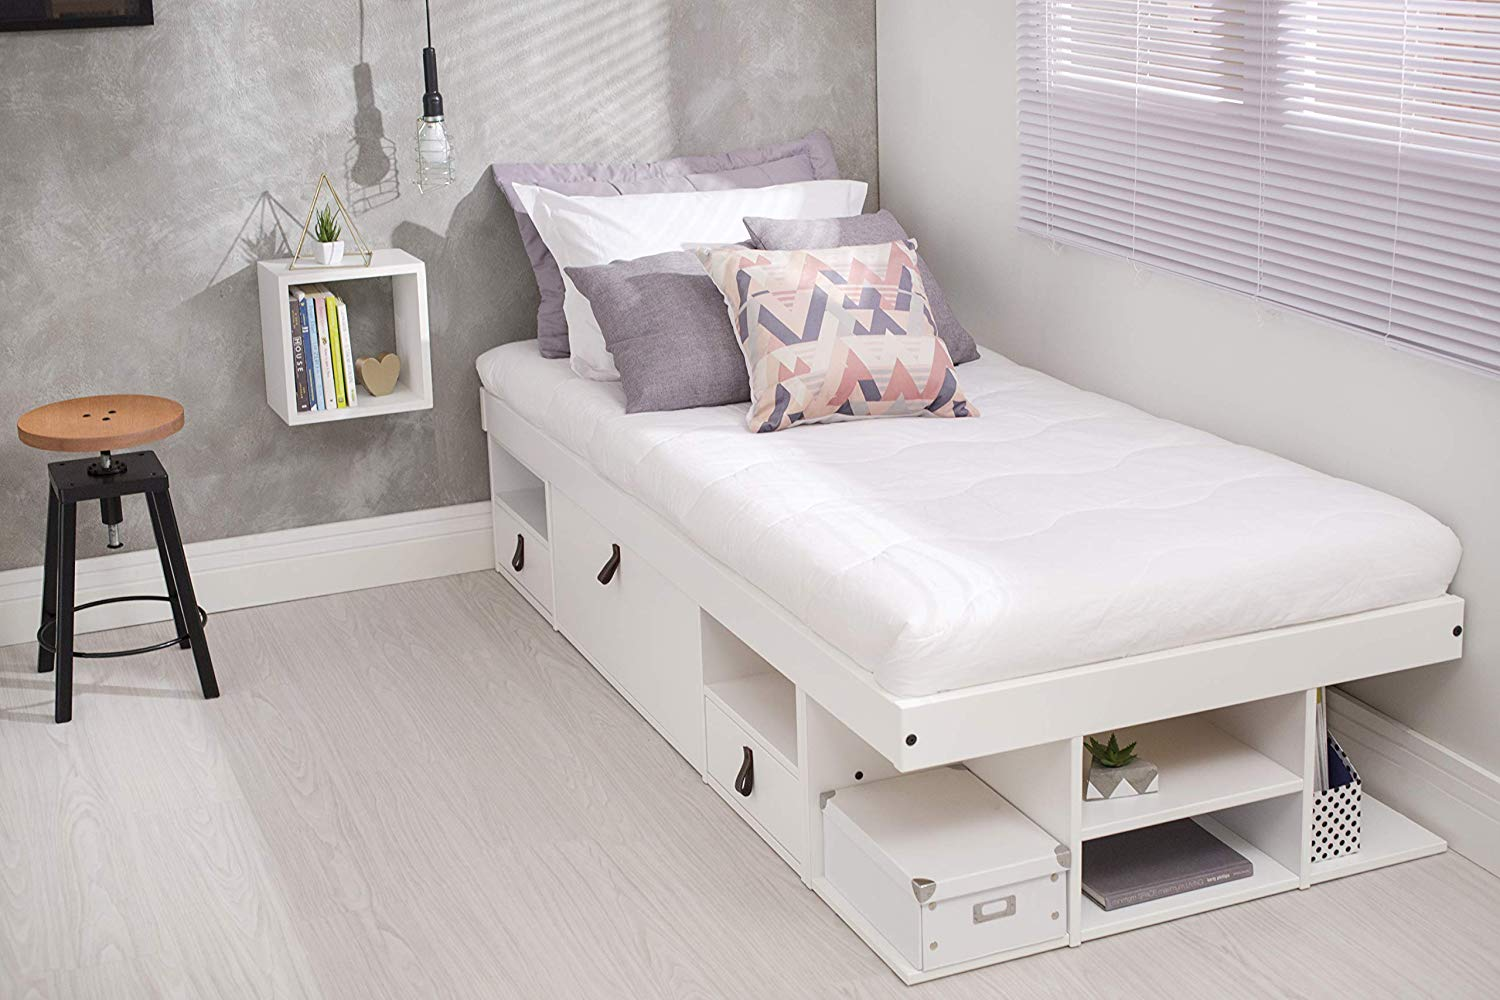 Memomad Bali Storage Platform Bed (Twin Size, Off White) - memomad.store